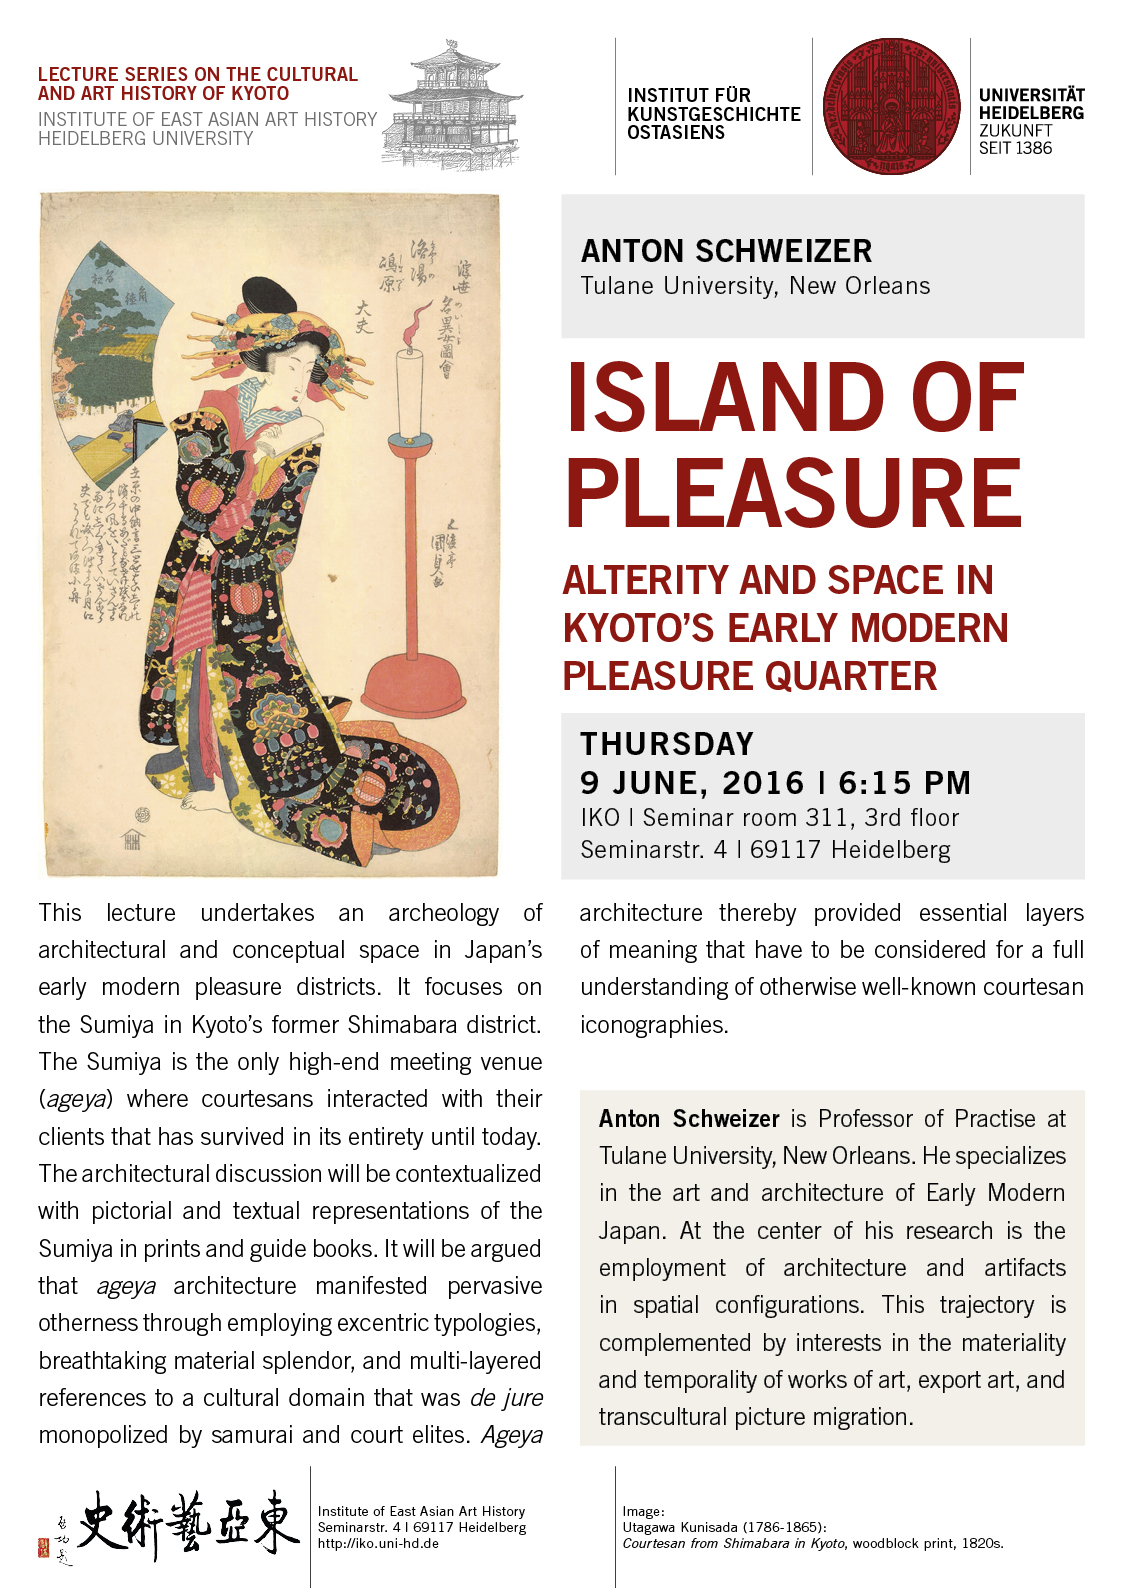 9 June, 2016 | Anton Schweizer: Island of Pleasure – Alterity and Space in Kyoto's Early Modern Pleasure Quarter